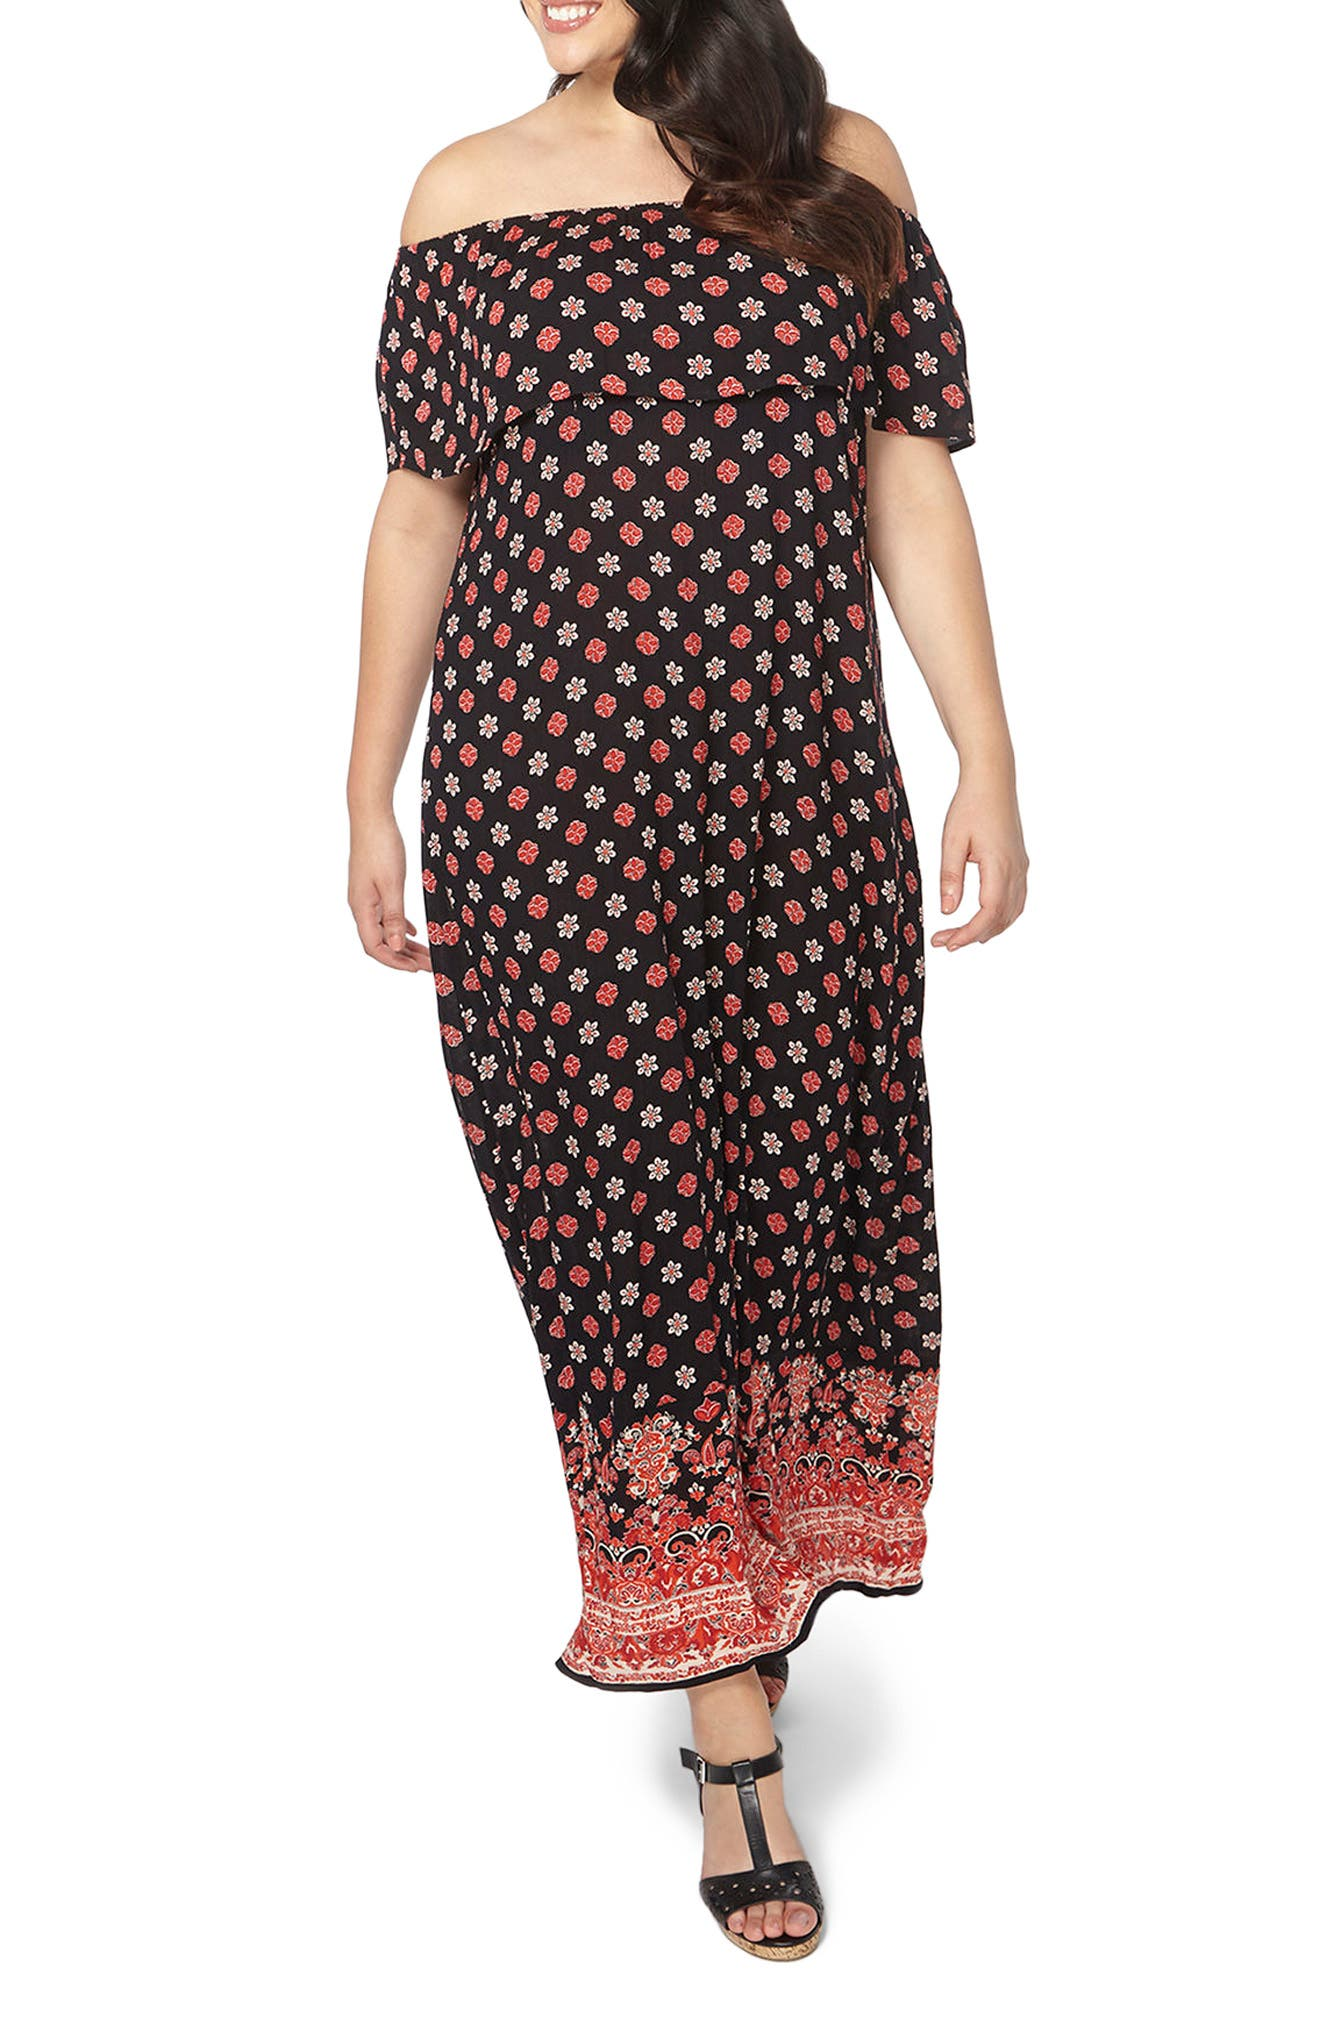 Border Print Maxi Dress,                         Main,                         color, 010